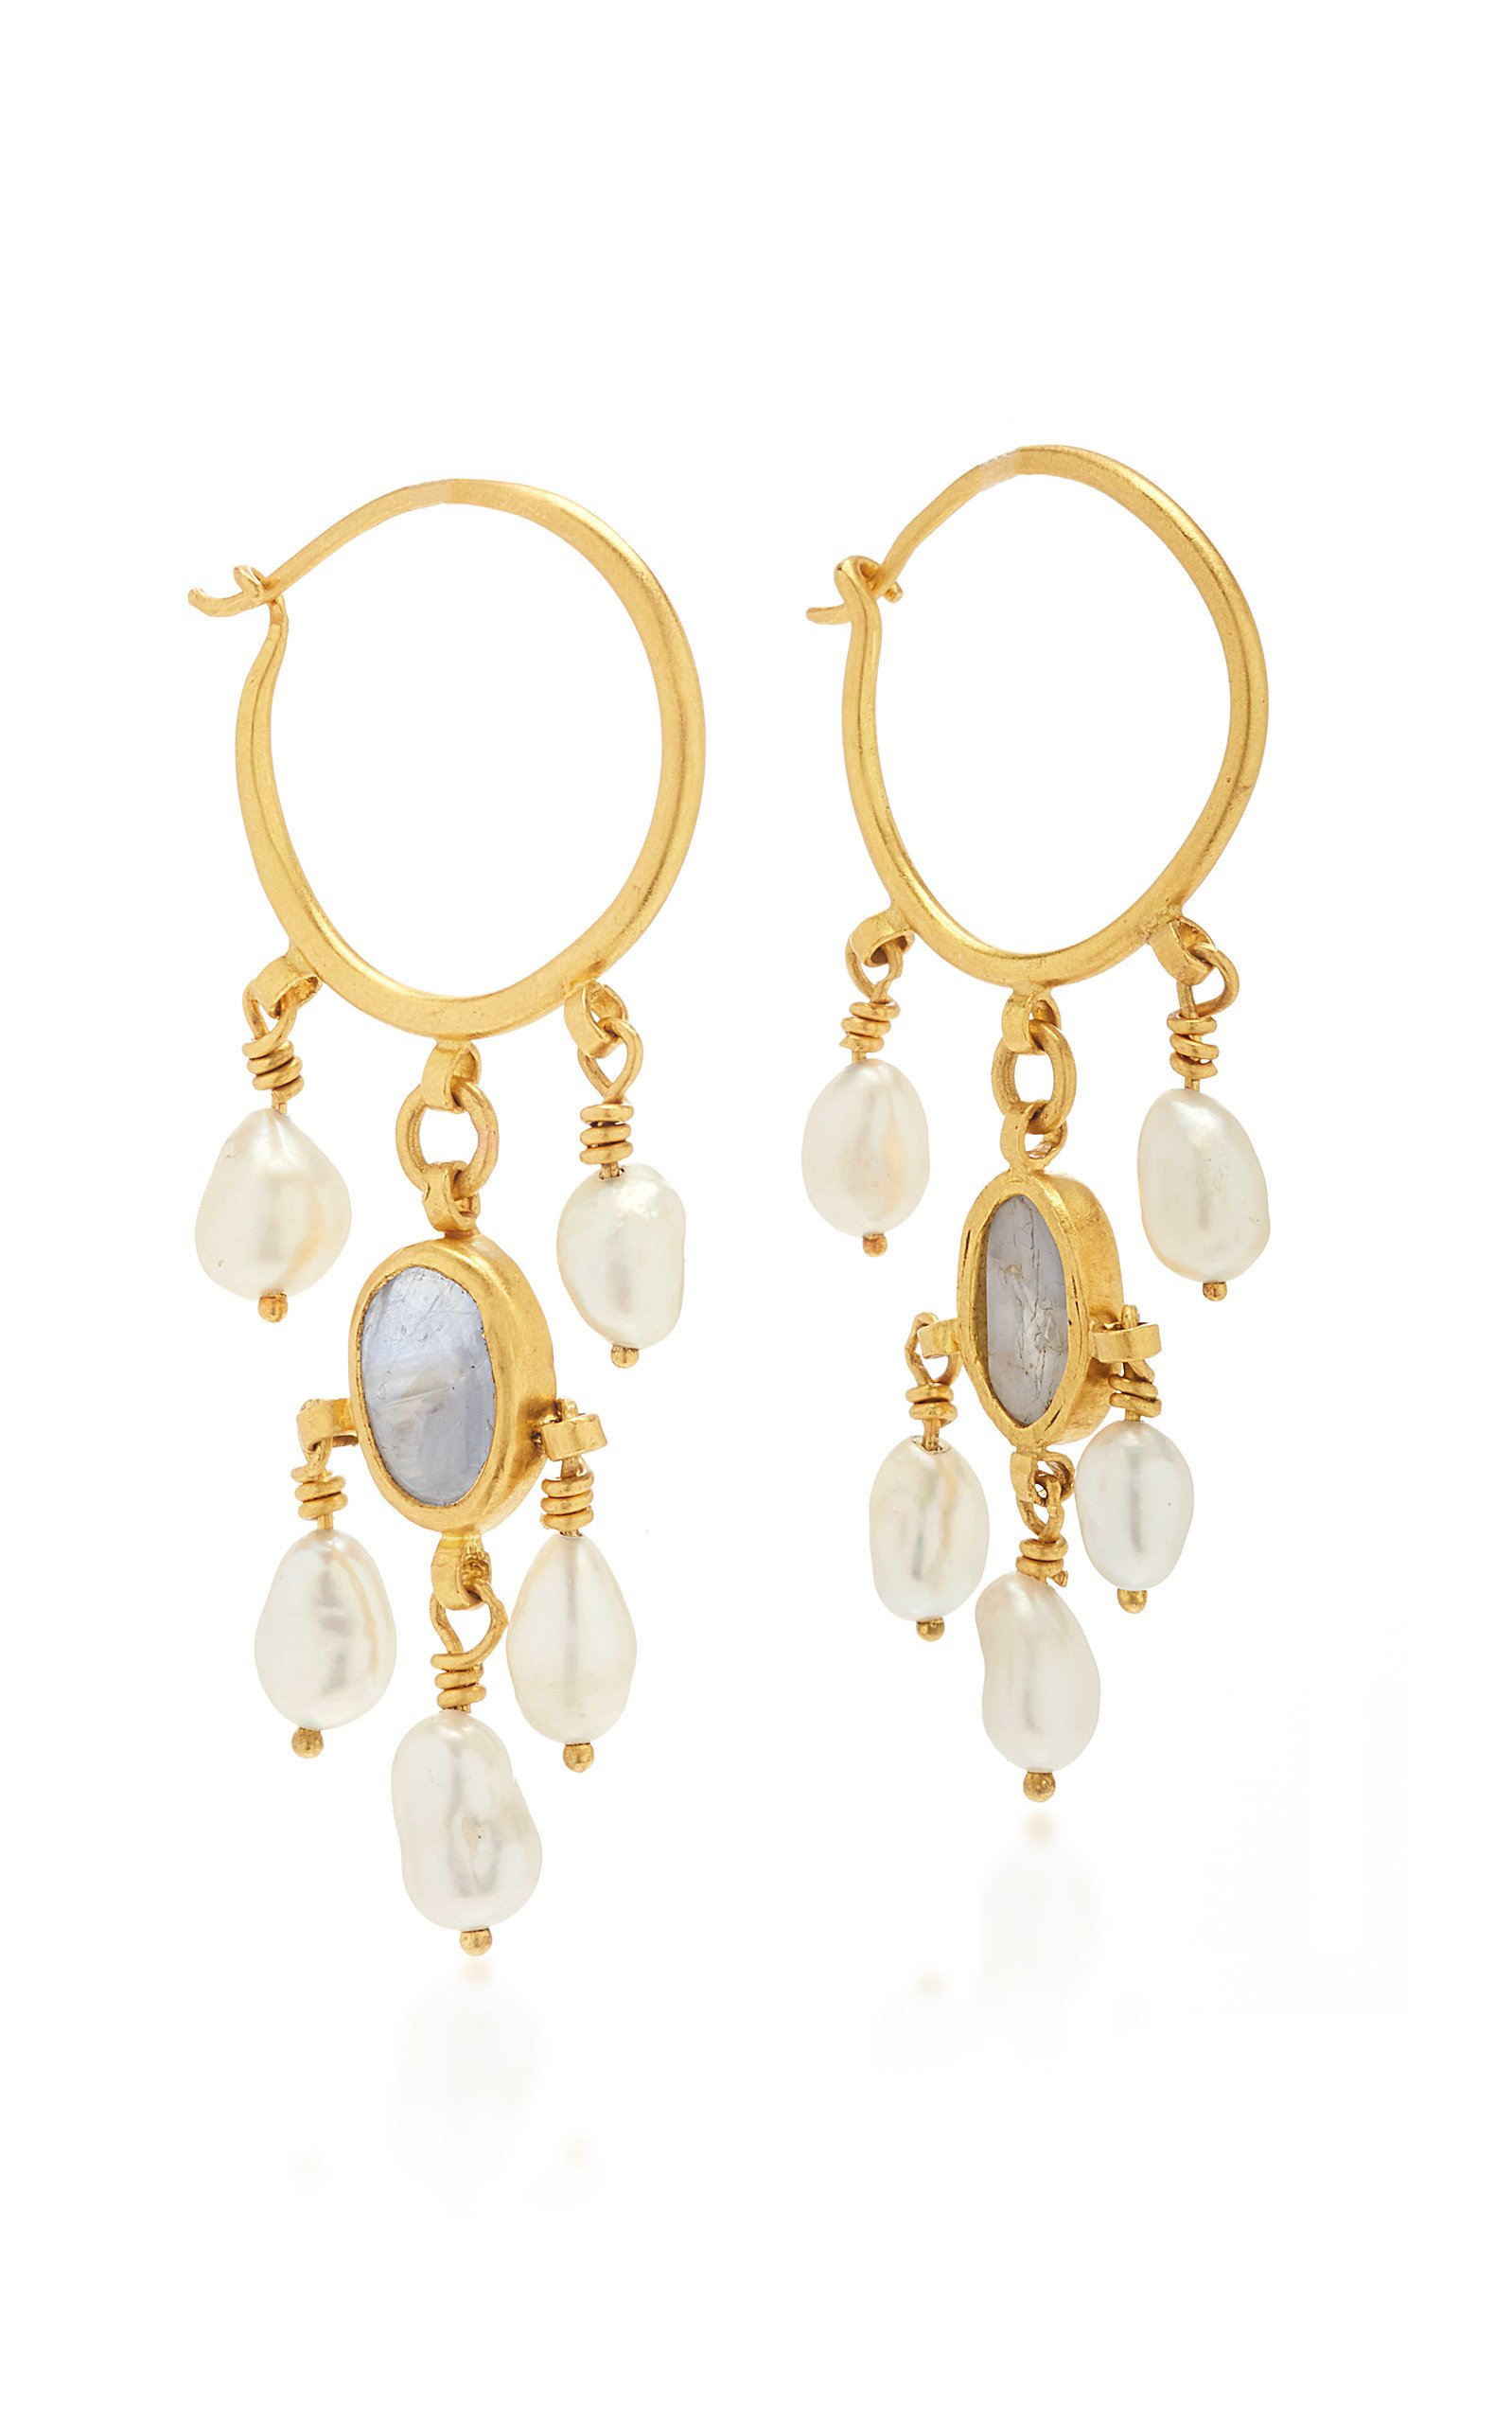 Prounis Keshi Pearls and Star Sapphire Hoop-and-hook earring